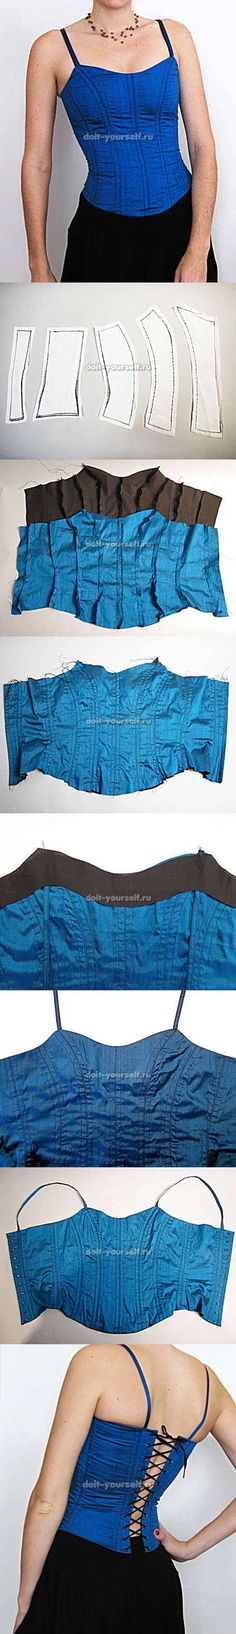 DIY Stylish Corset